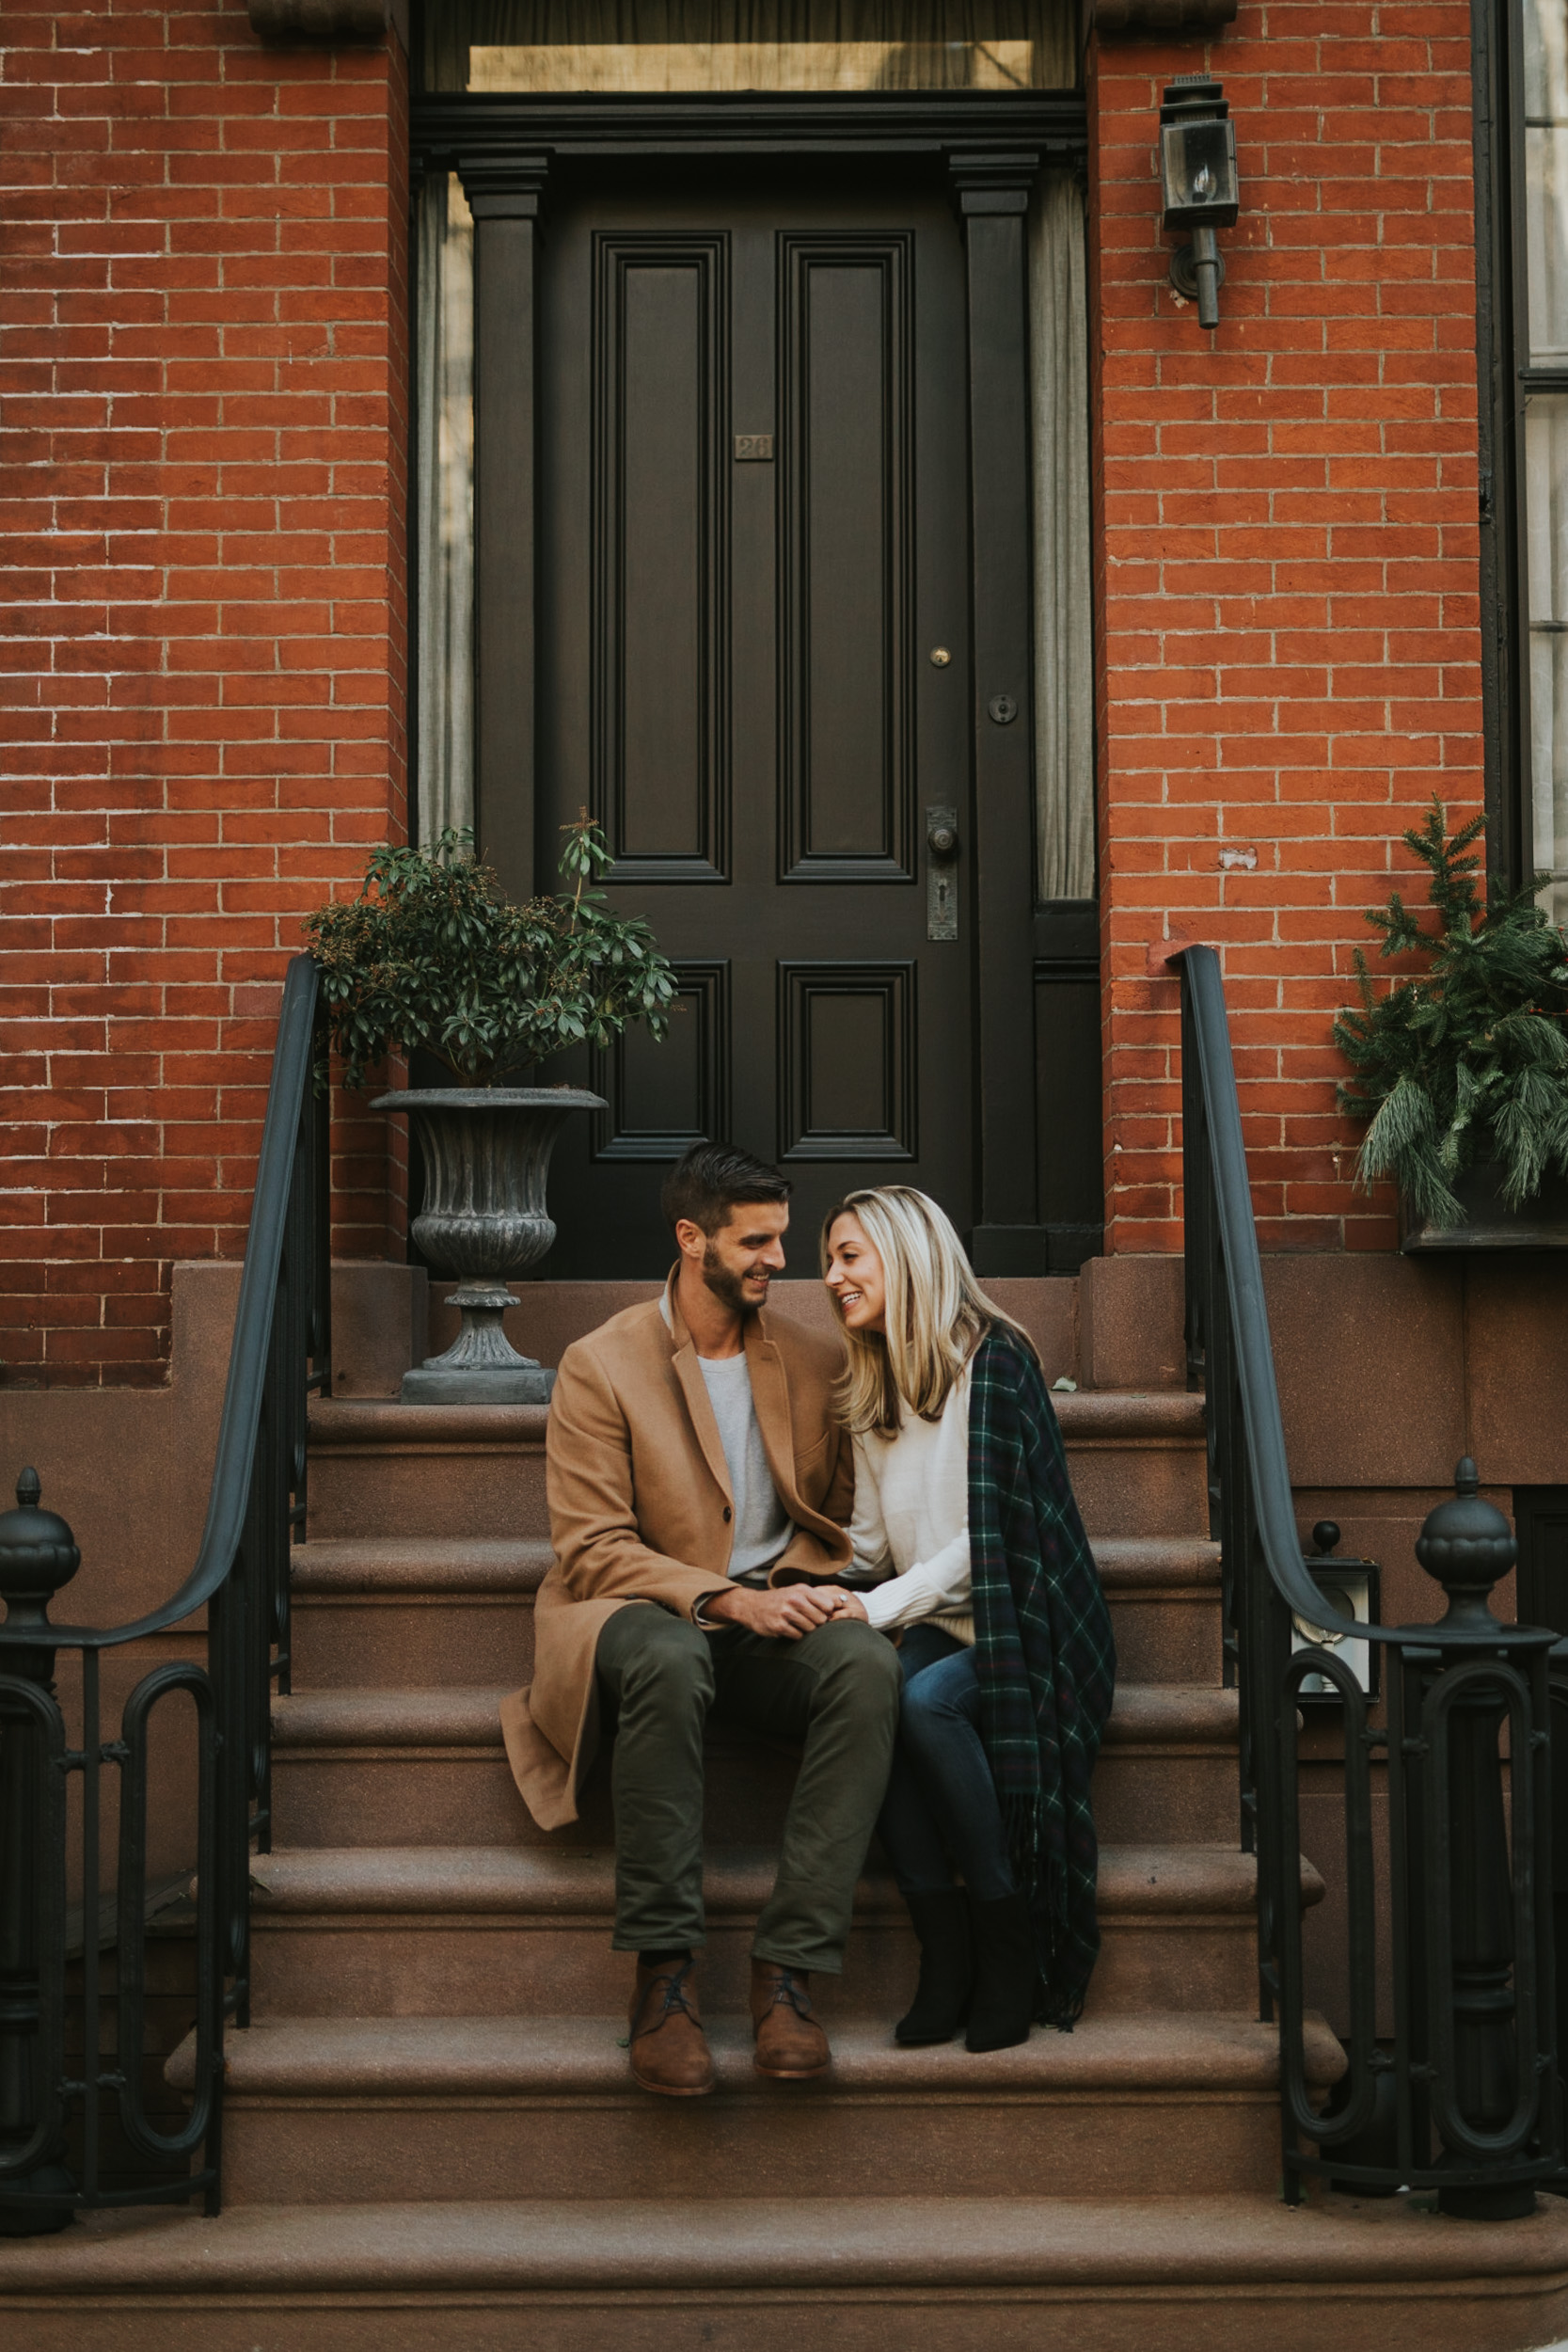 Colorful Fall NYC Engagement Session_Polly C Photography 1721151349.jpg